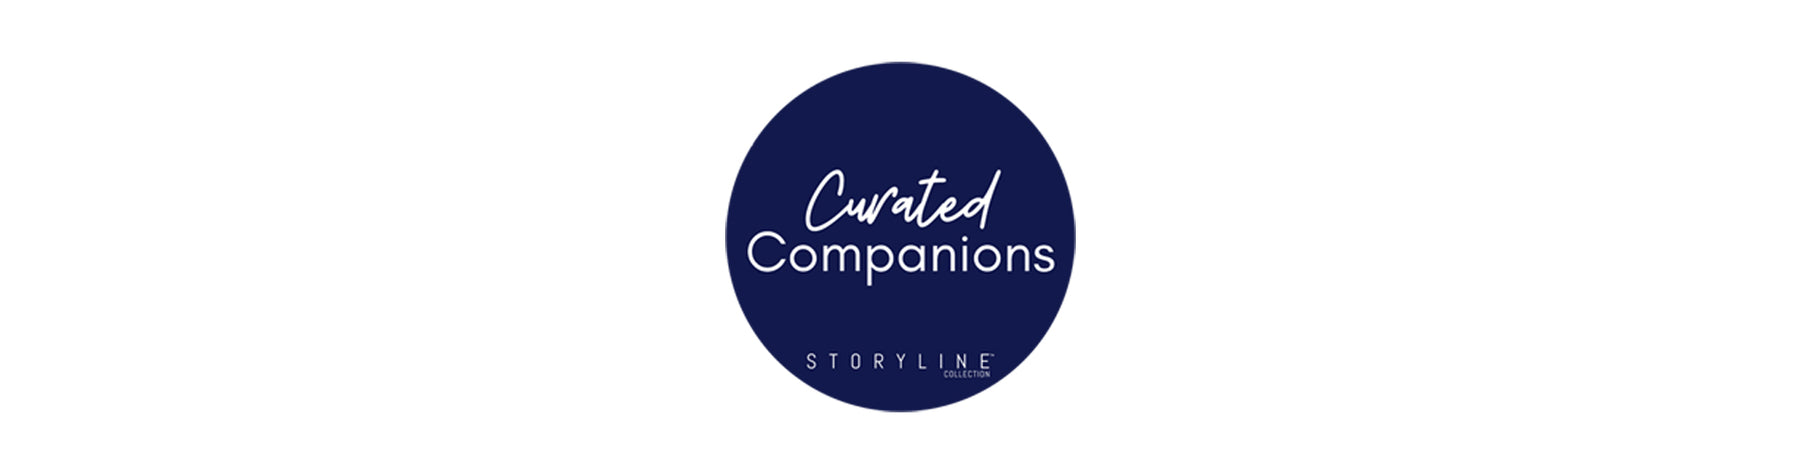 Introducing Curated Companions!